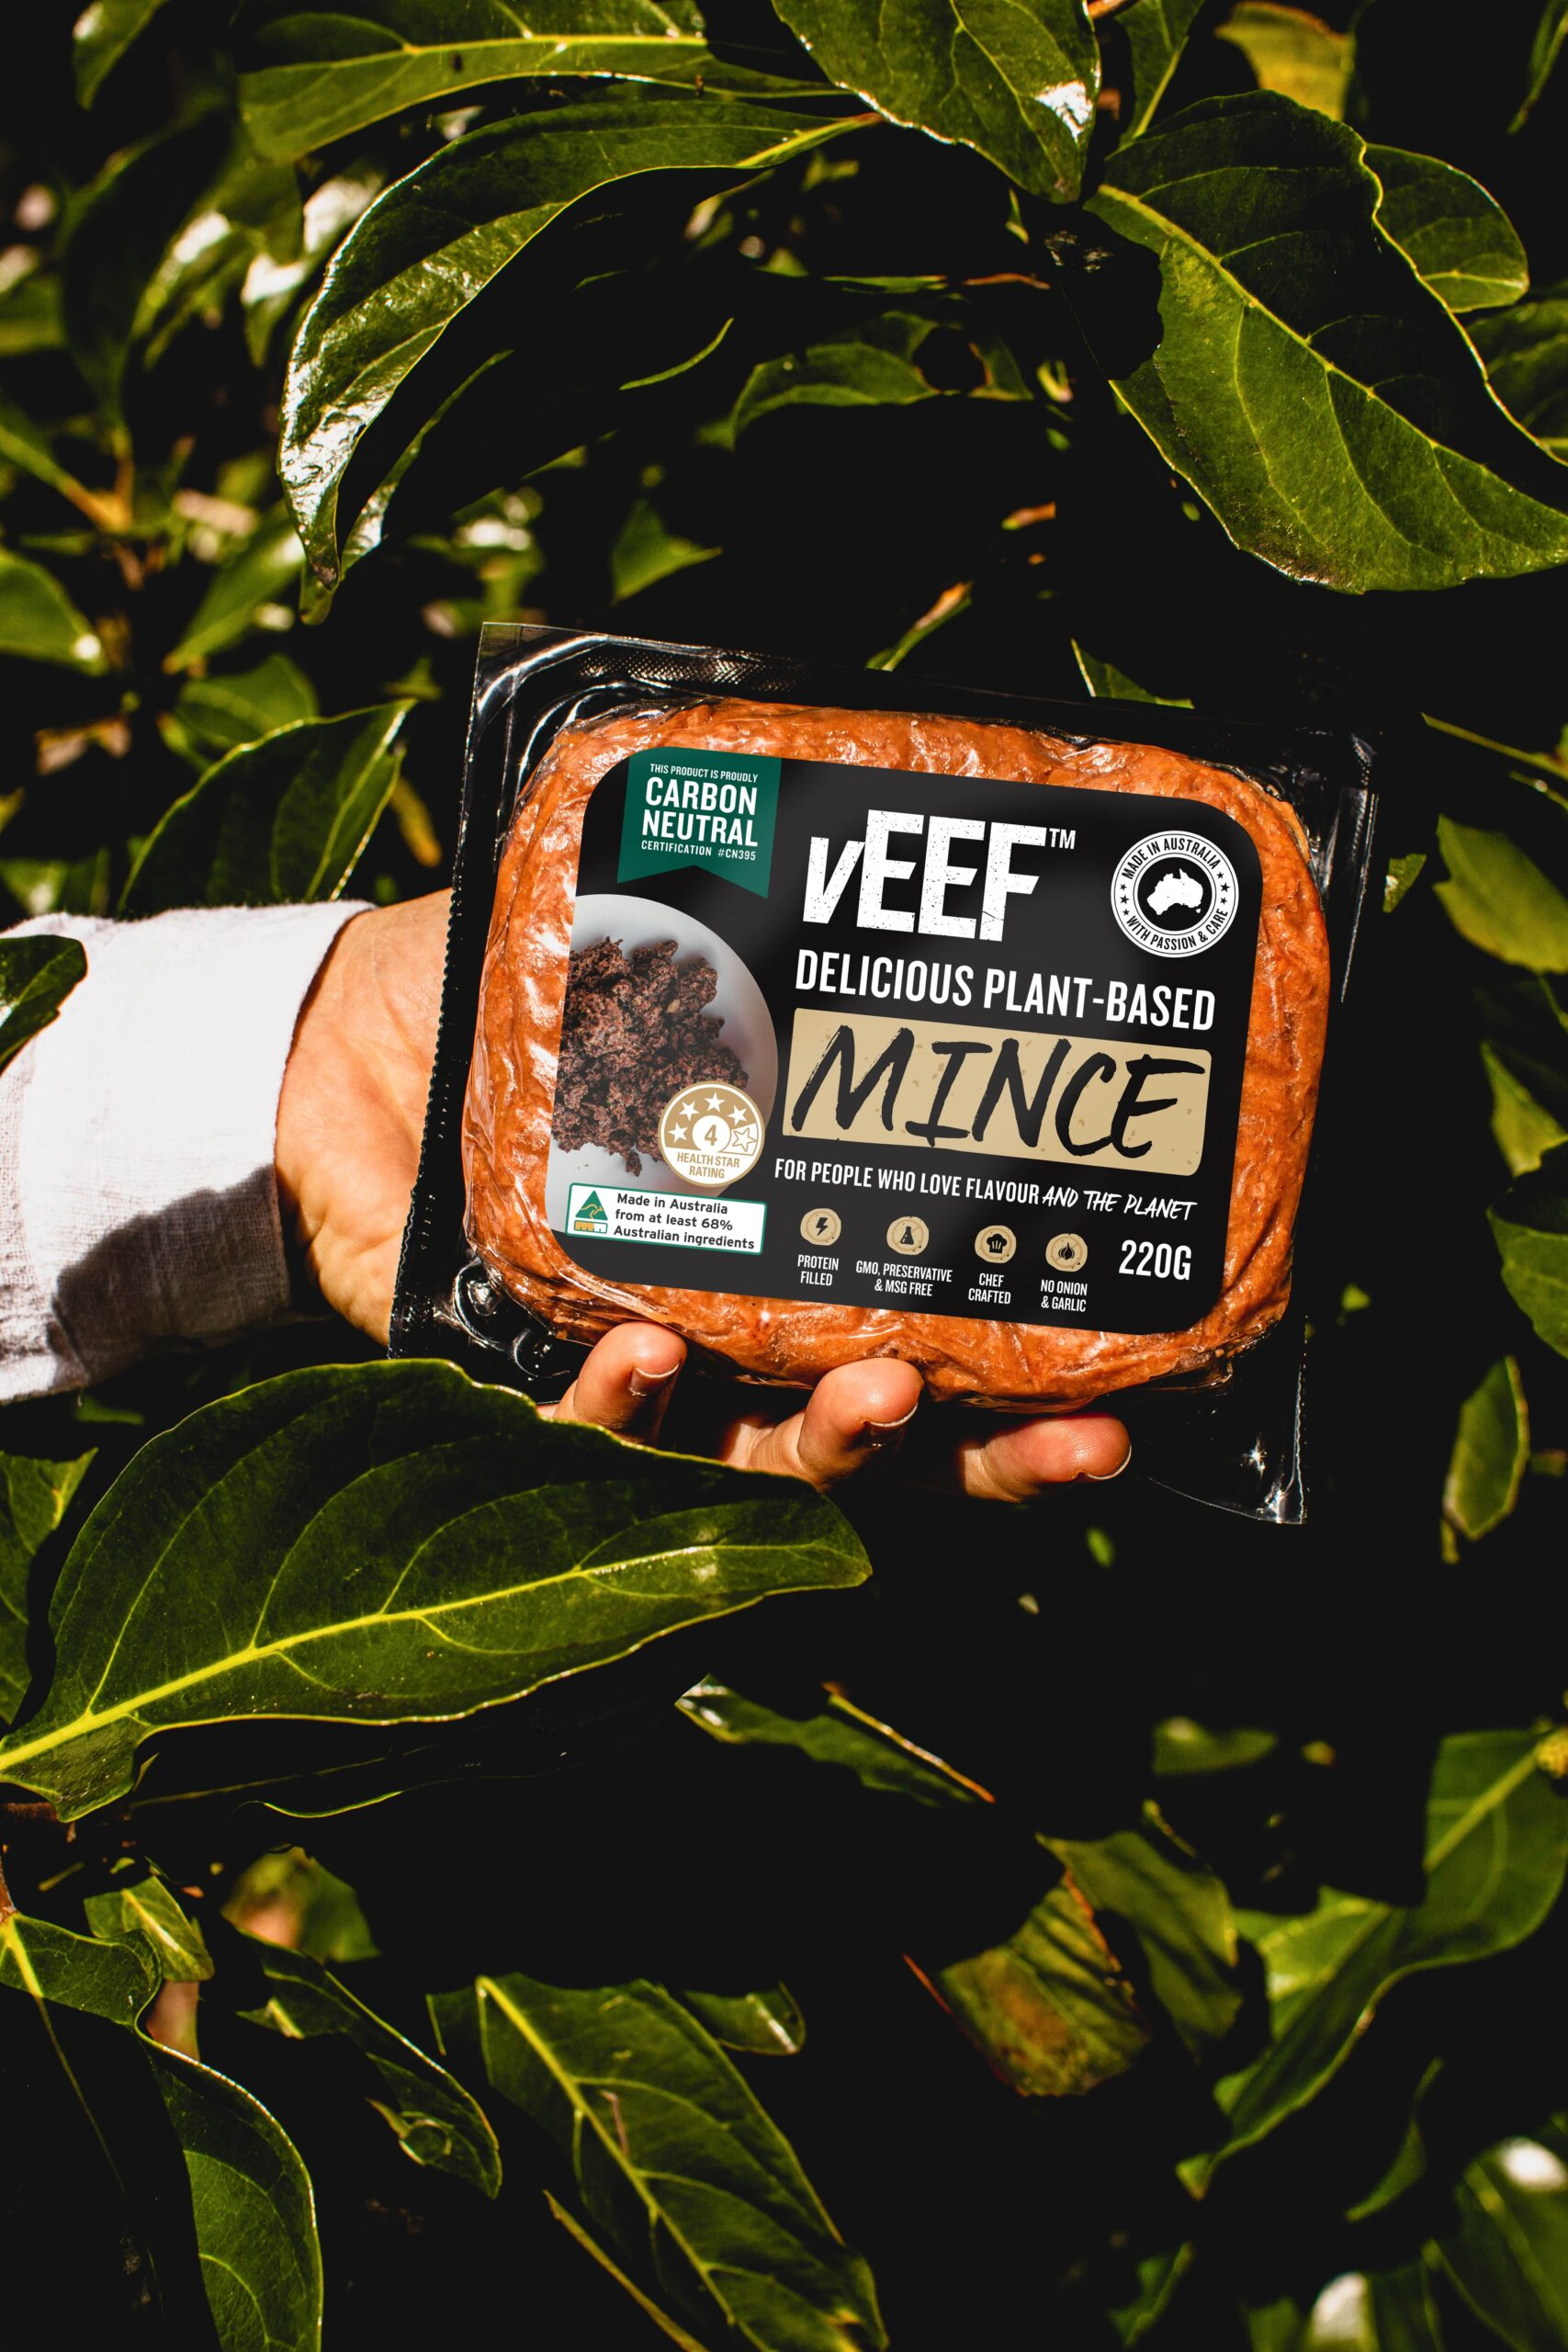 Hand holding vEEF Carbon Neutral Mince against greenery